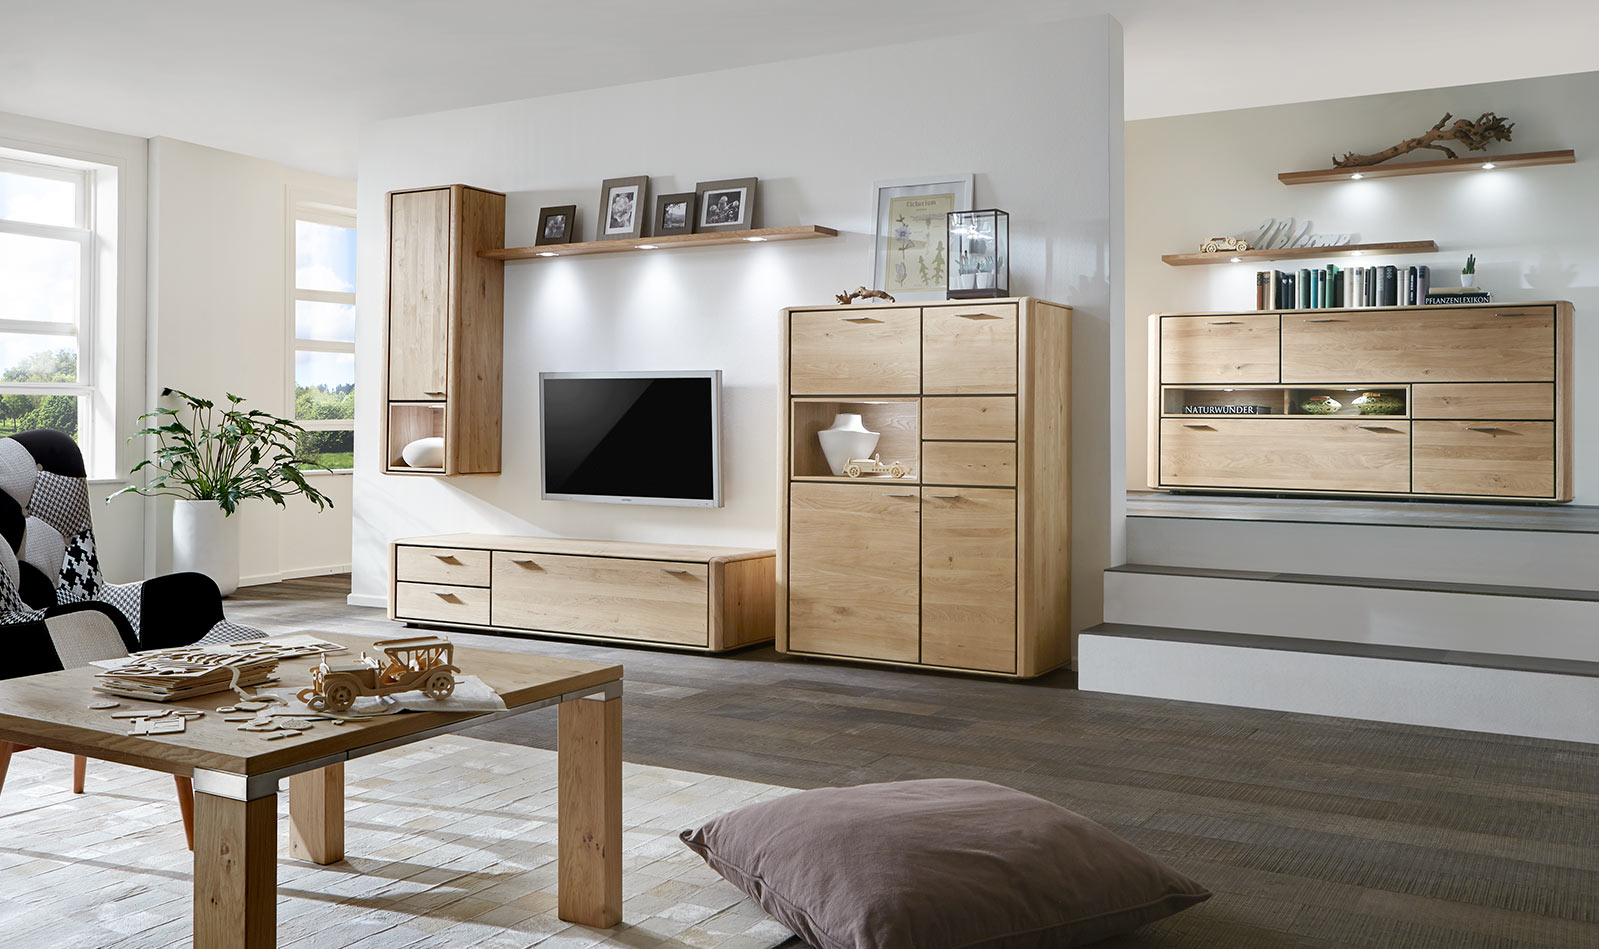 wohnzimmer programme emilio venjakob m bel vorsprung durch design und qualit t. Black Bedroom Furniture Sets. Home Design Ideas